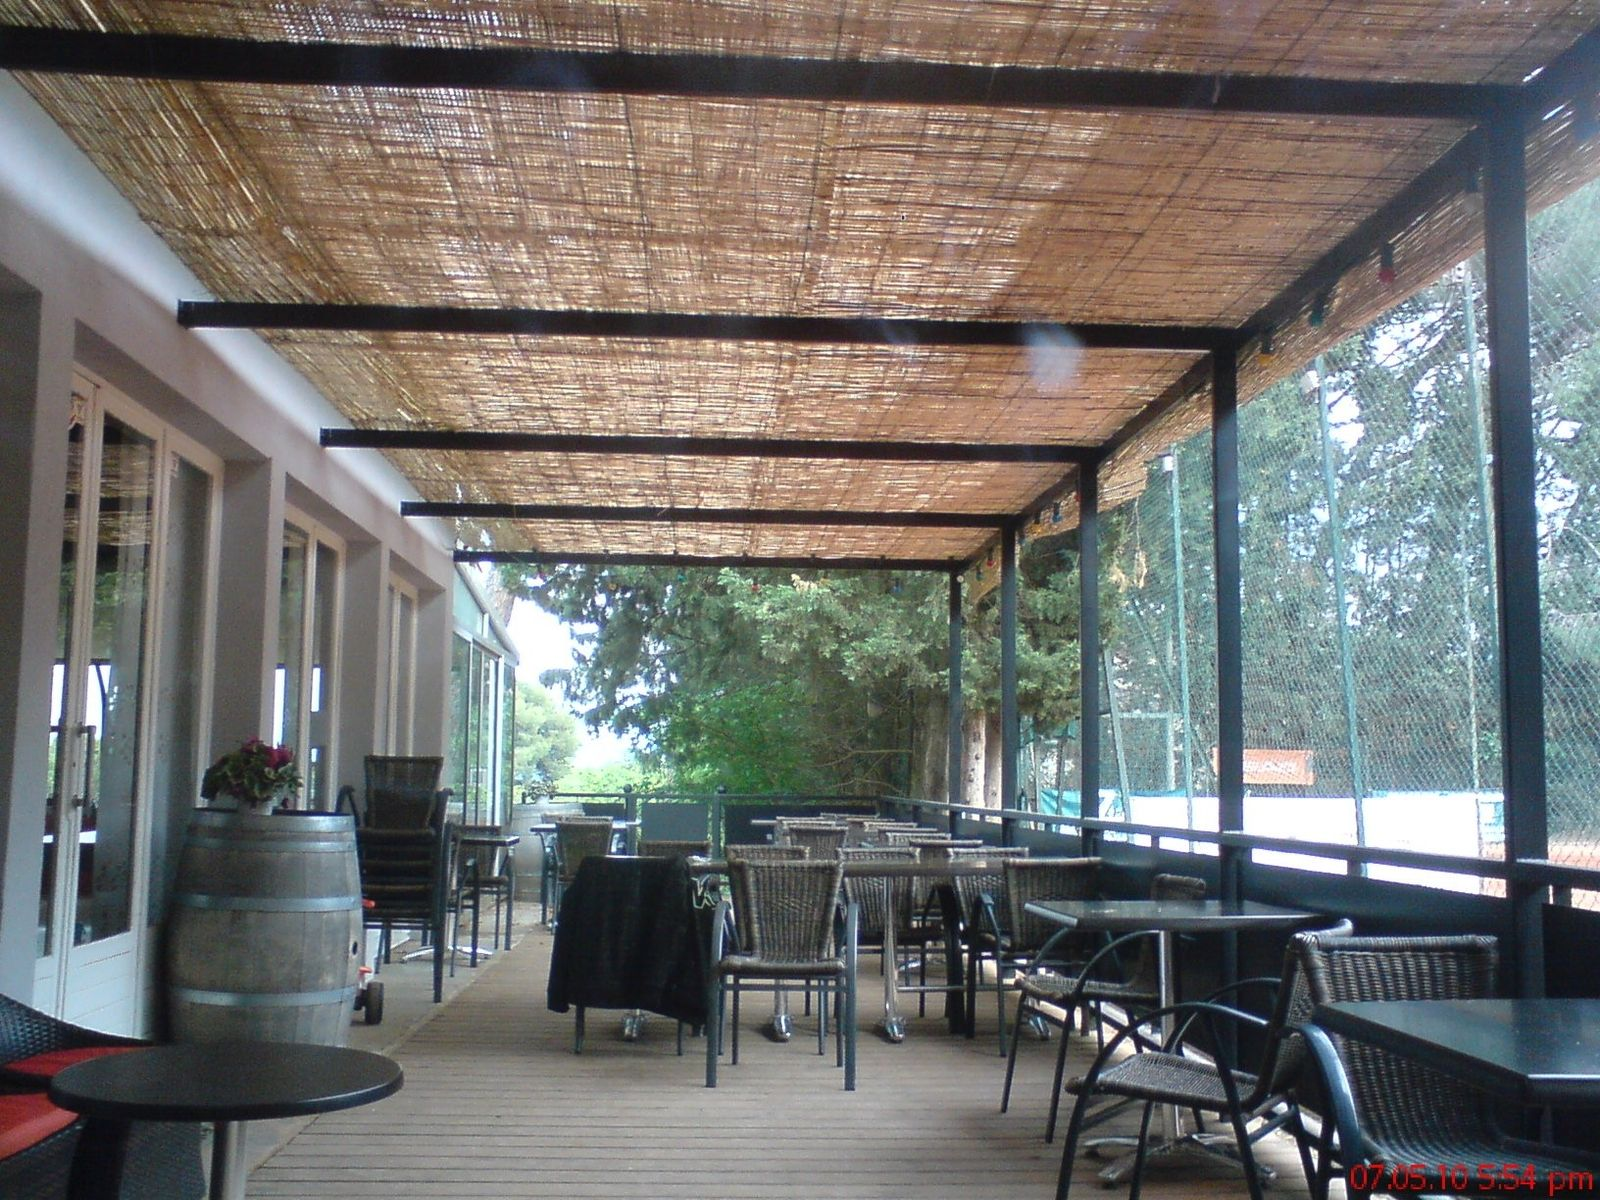 Handmade set club new pergola and wood deck by steel monkey dream shop llc - Pergola en kit aluminium ...